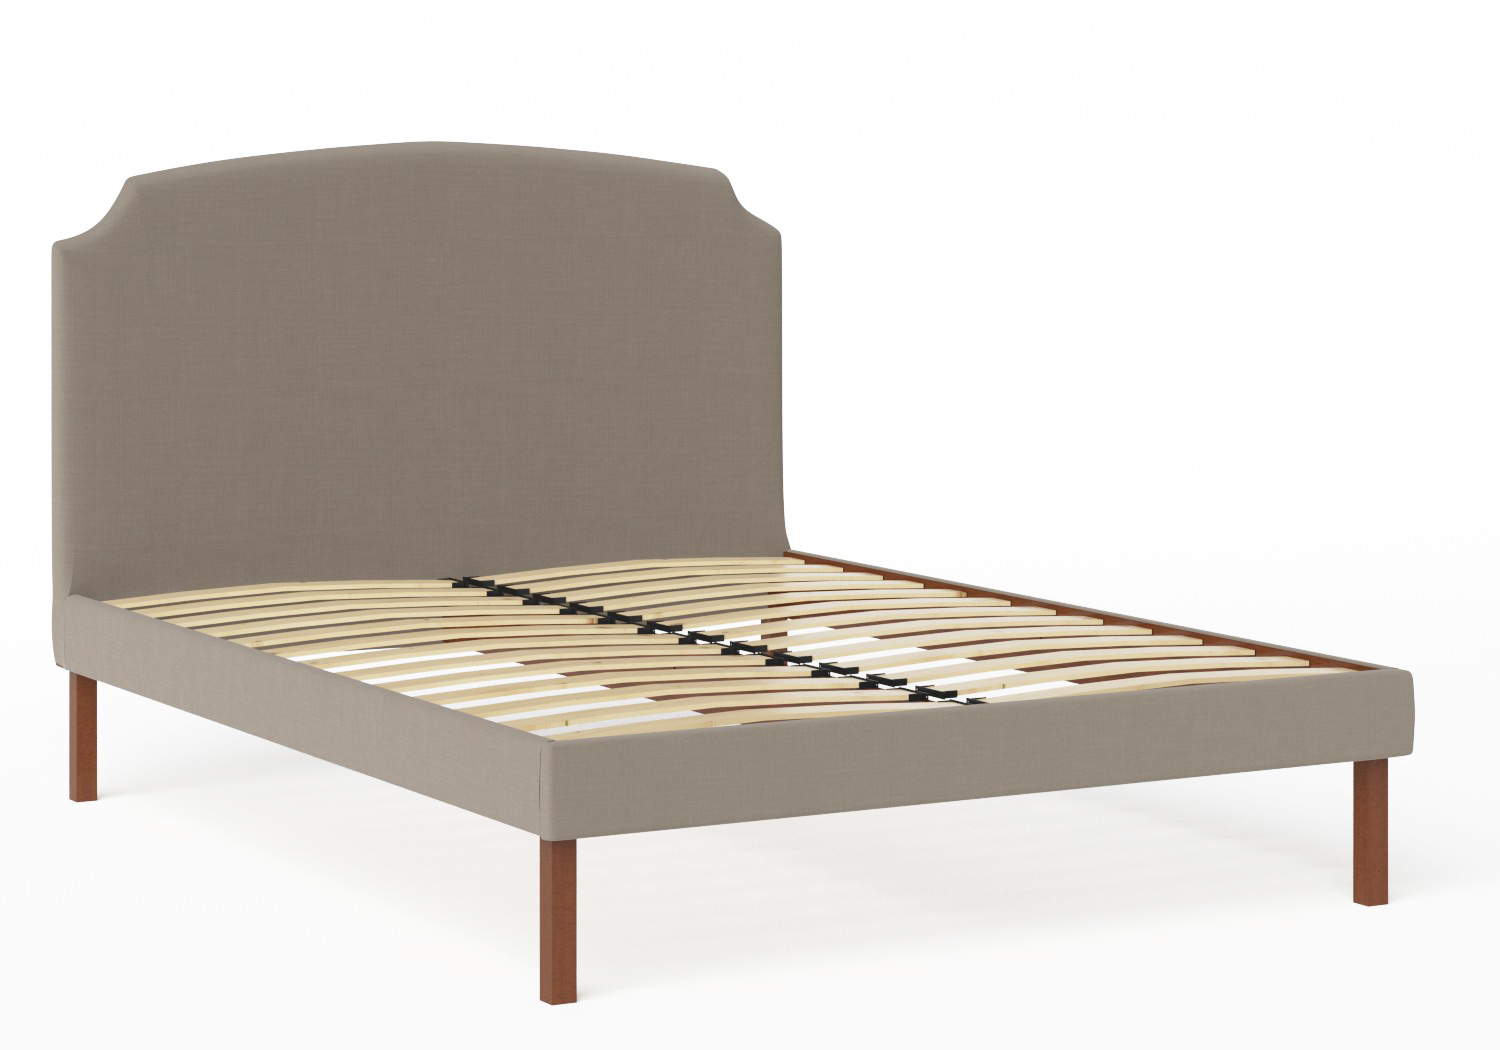 Kobe Upholstered Bed in Grey fabric shown with slatted frame